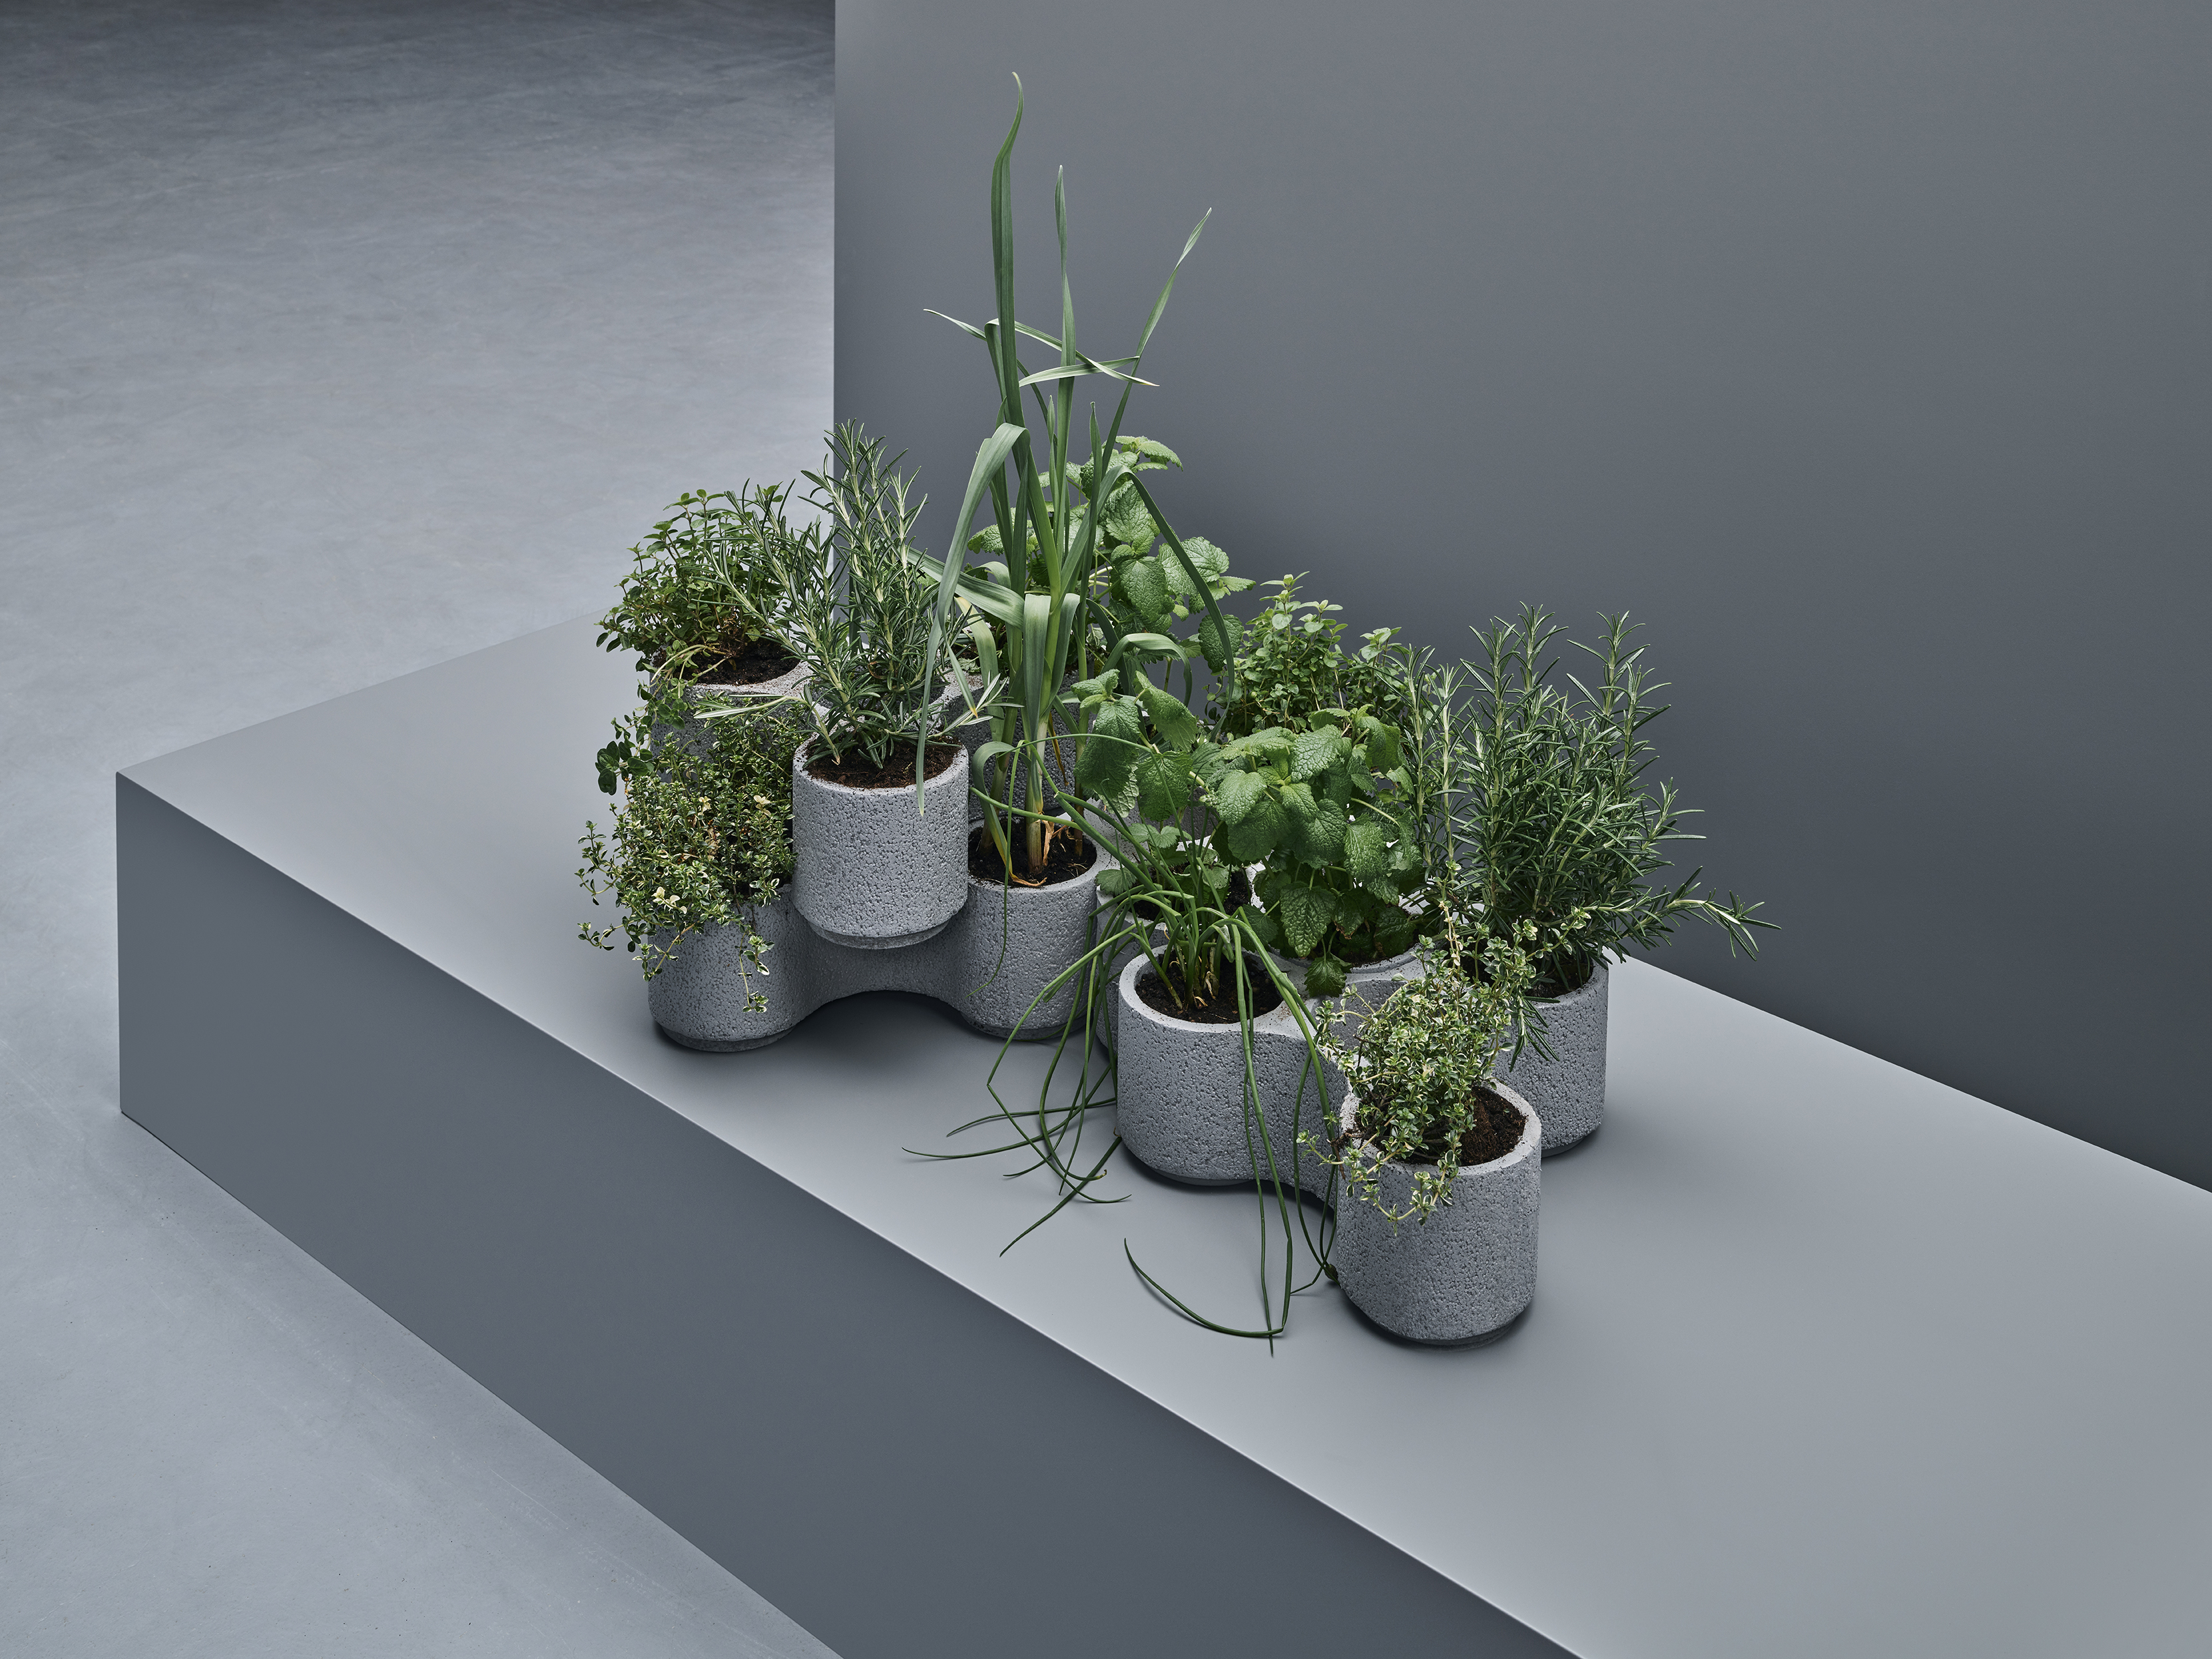 The stackable planters designed by Tom Dixon for IKEA.